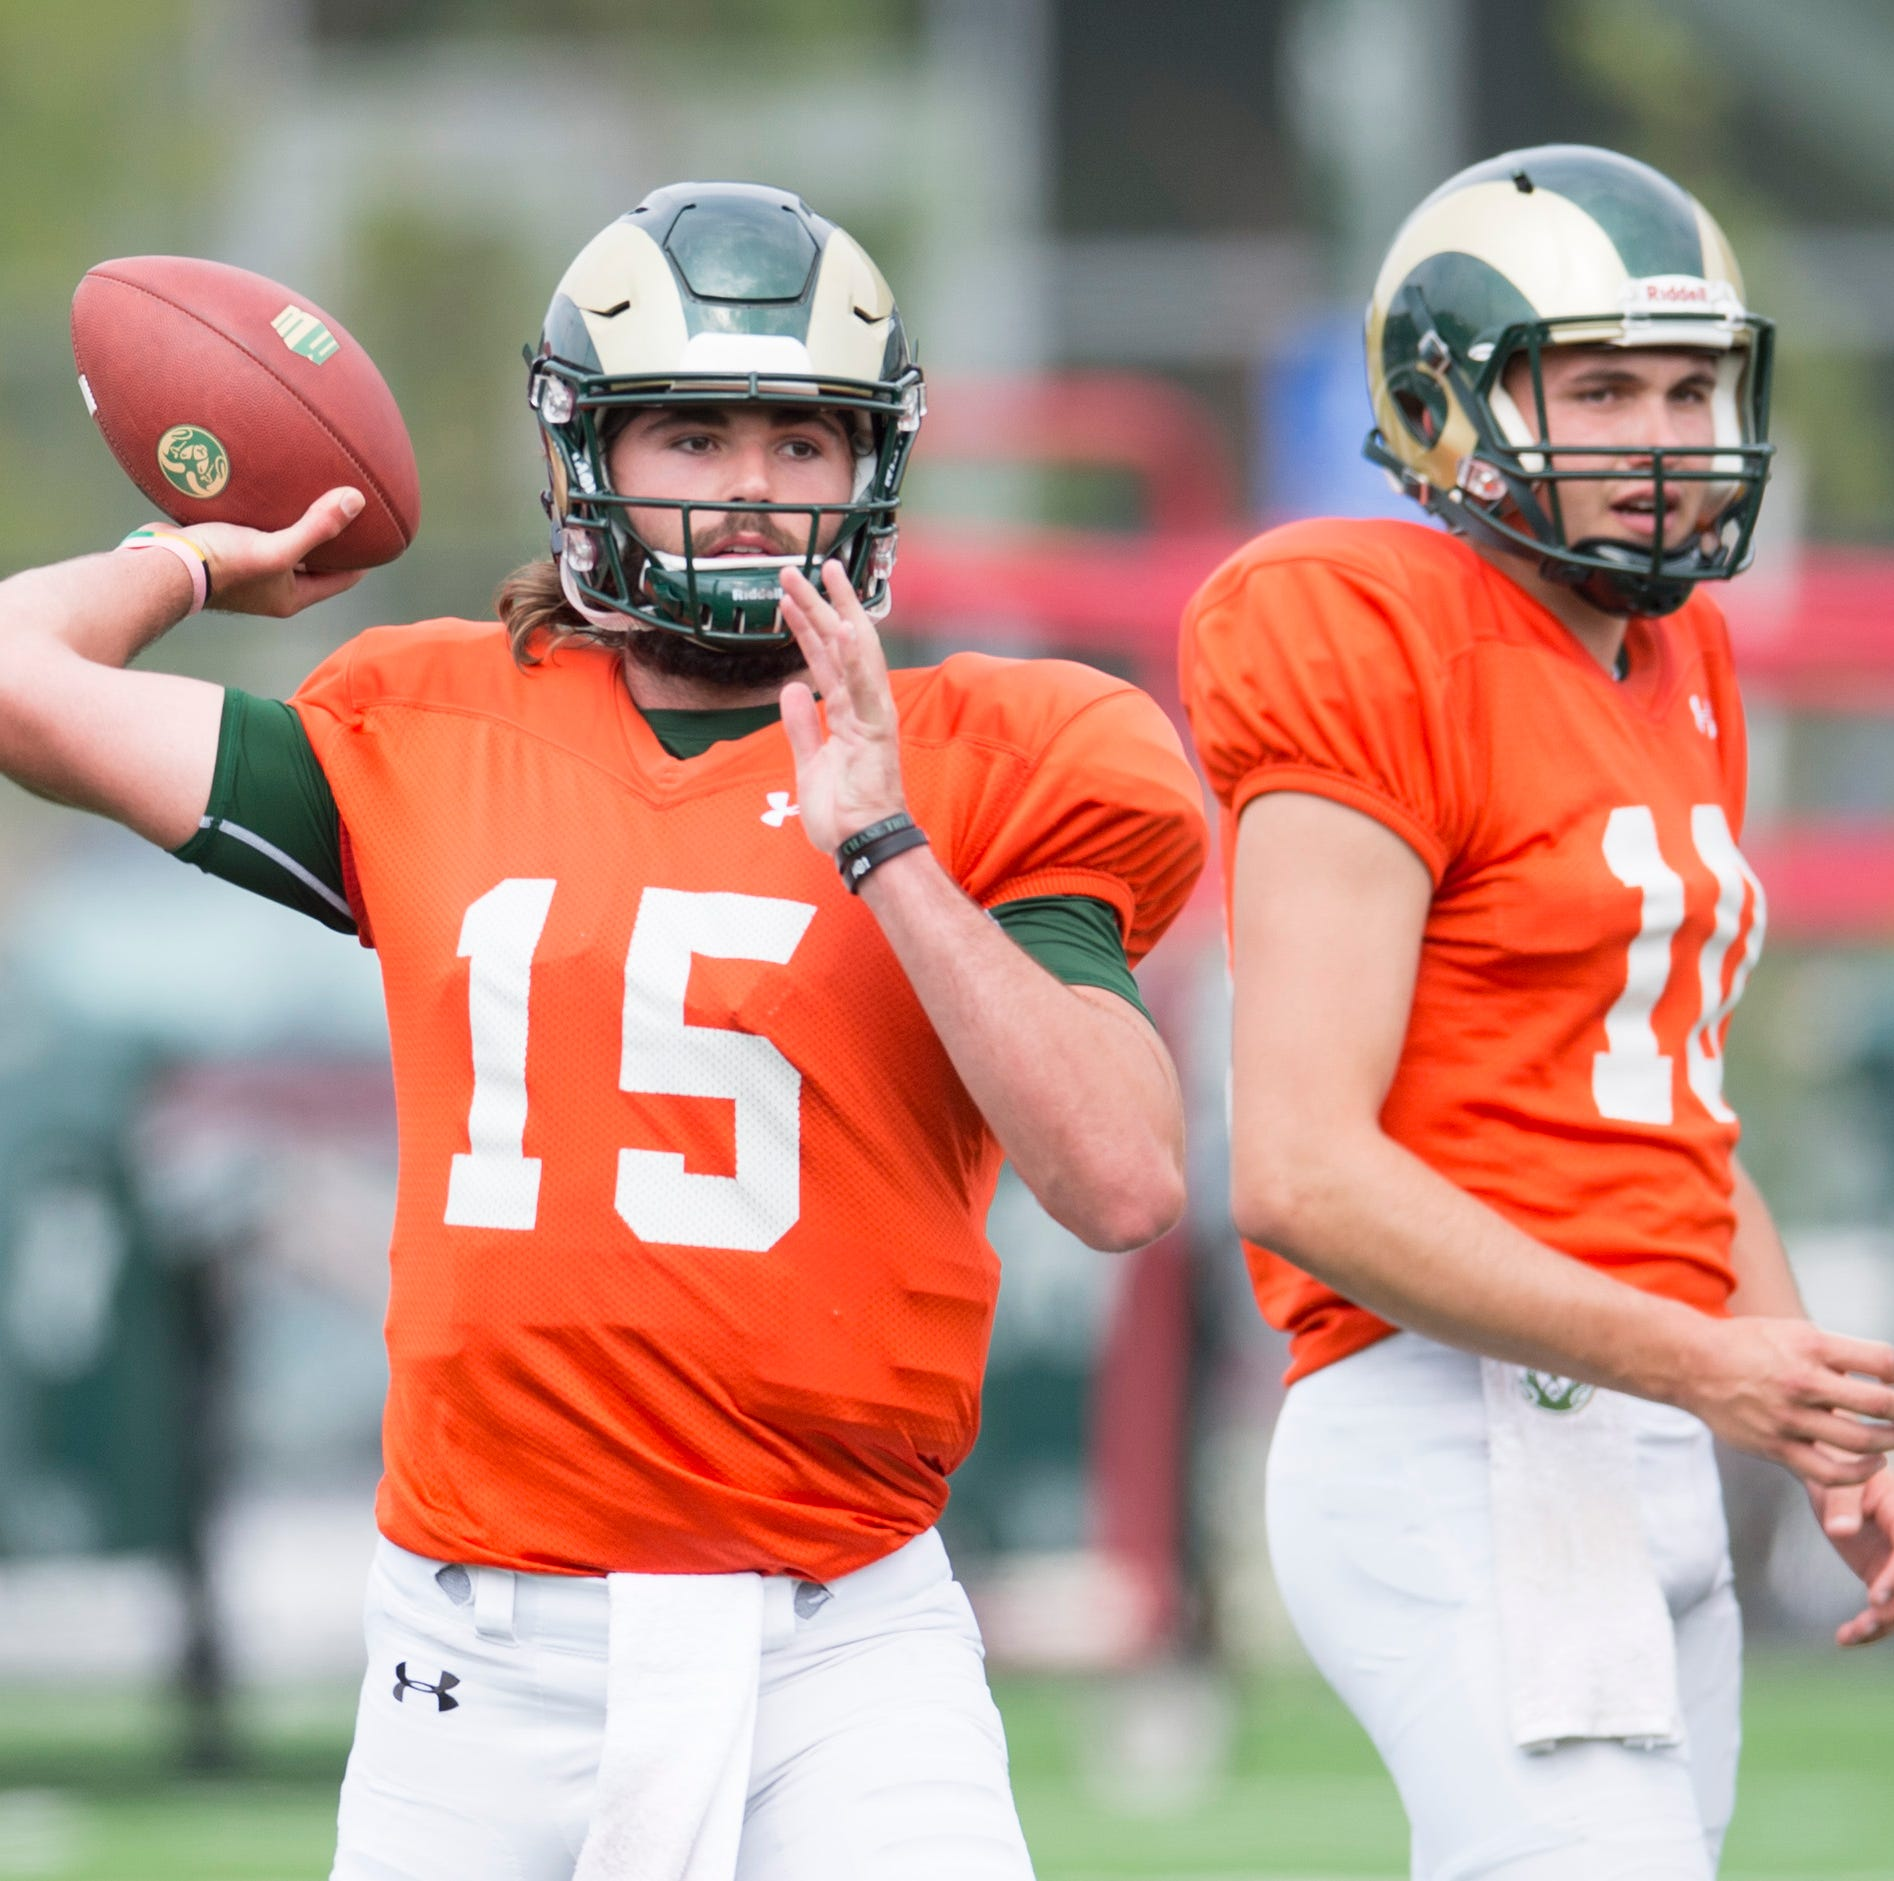 Takeaways from CSU football scrimmage: Collin Hill's progress continues, defense steps up